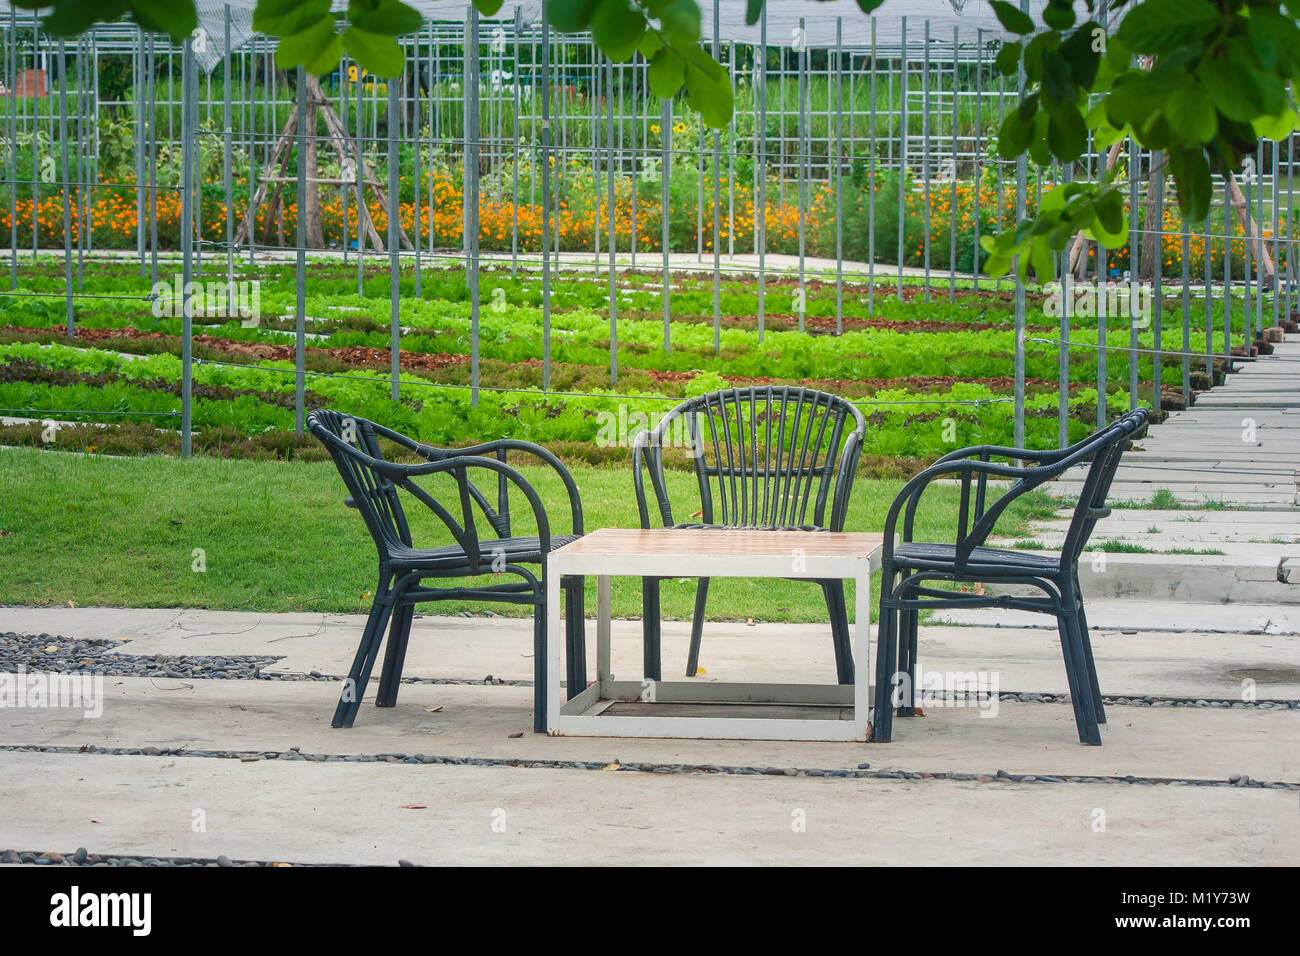 Wonderful Three Black Wooden Chair And One Table Setting On Concrete Floor At Beautiful  Outdoor Garden With Green Natural Background.